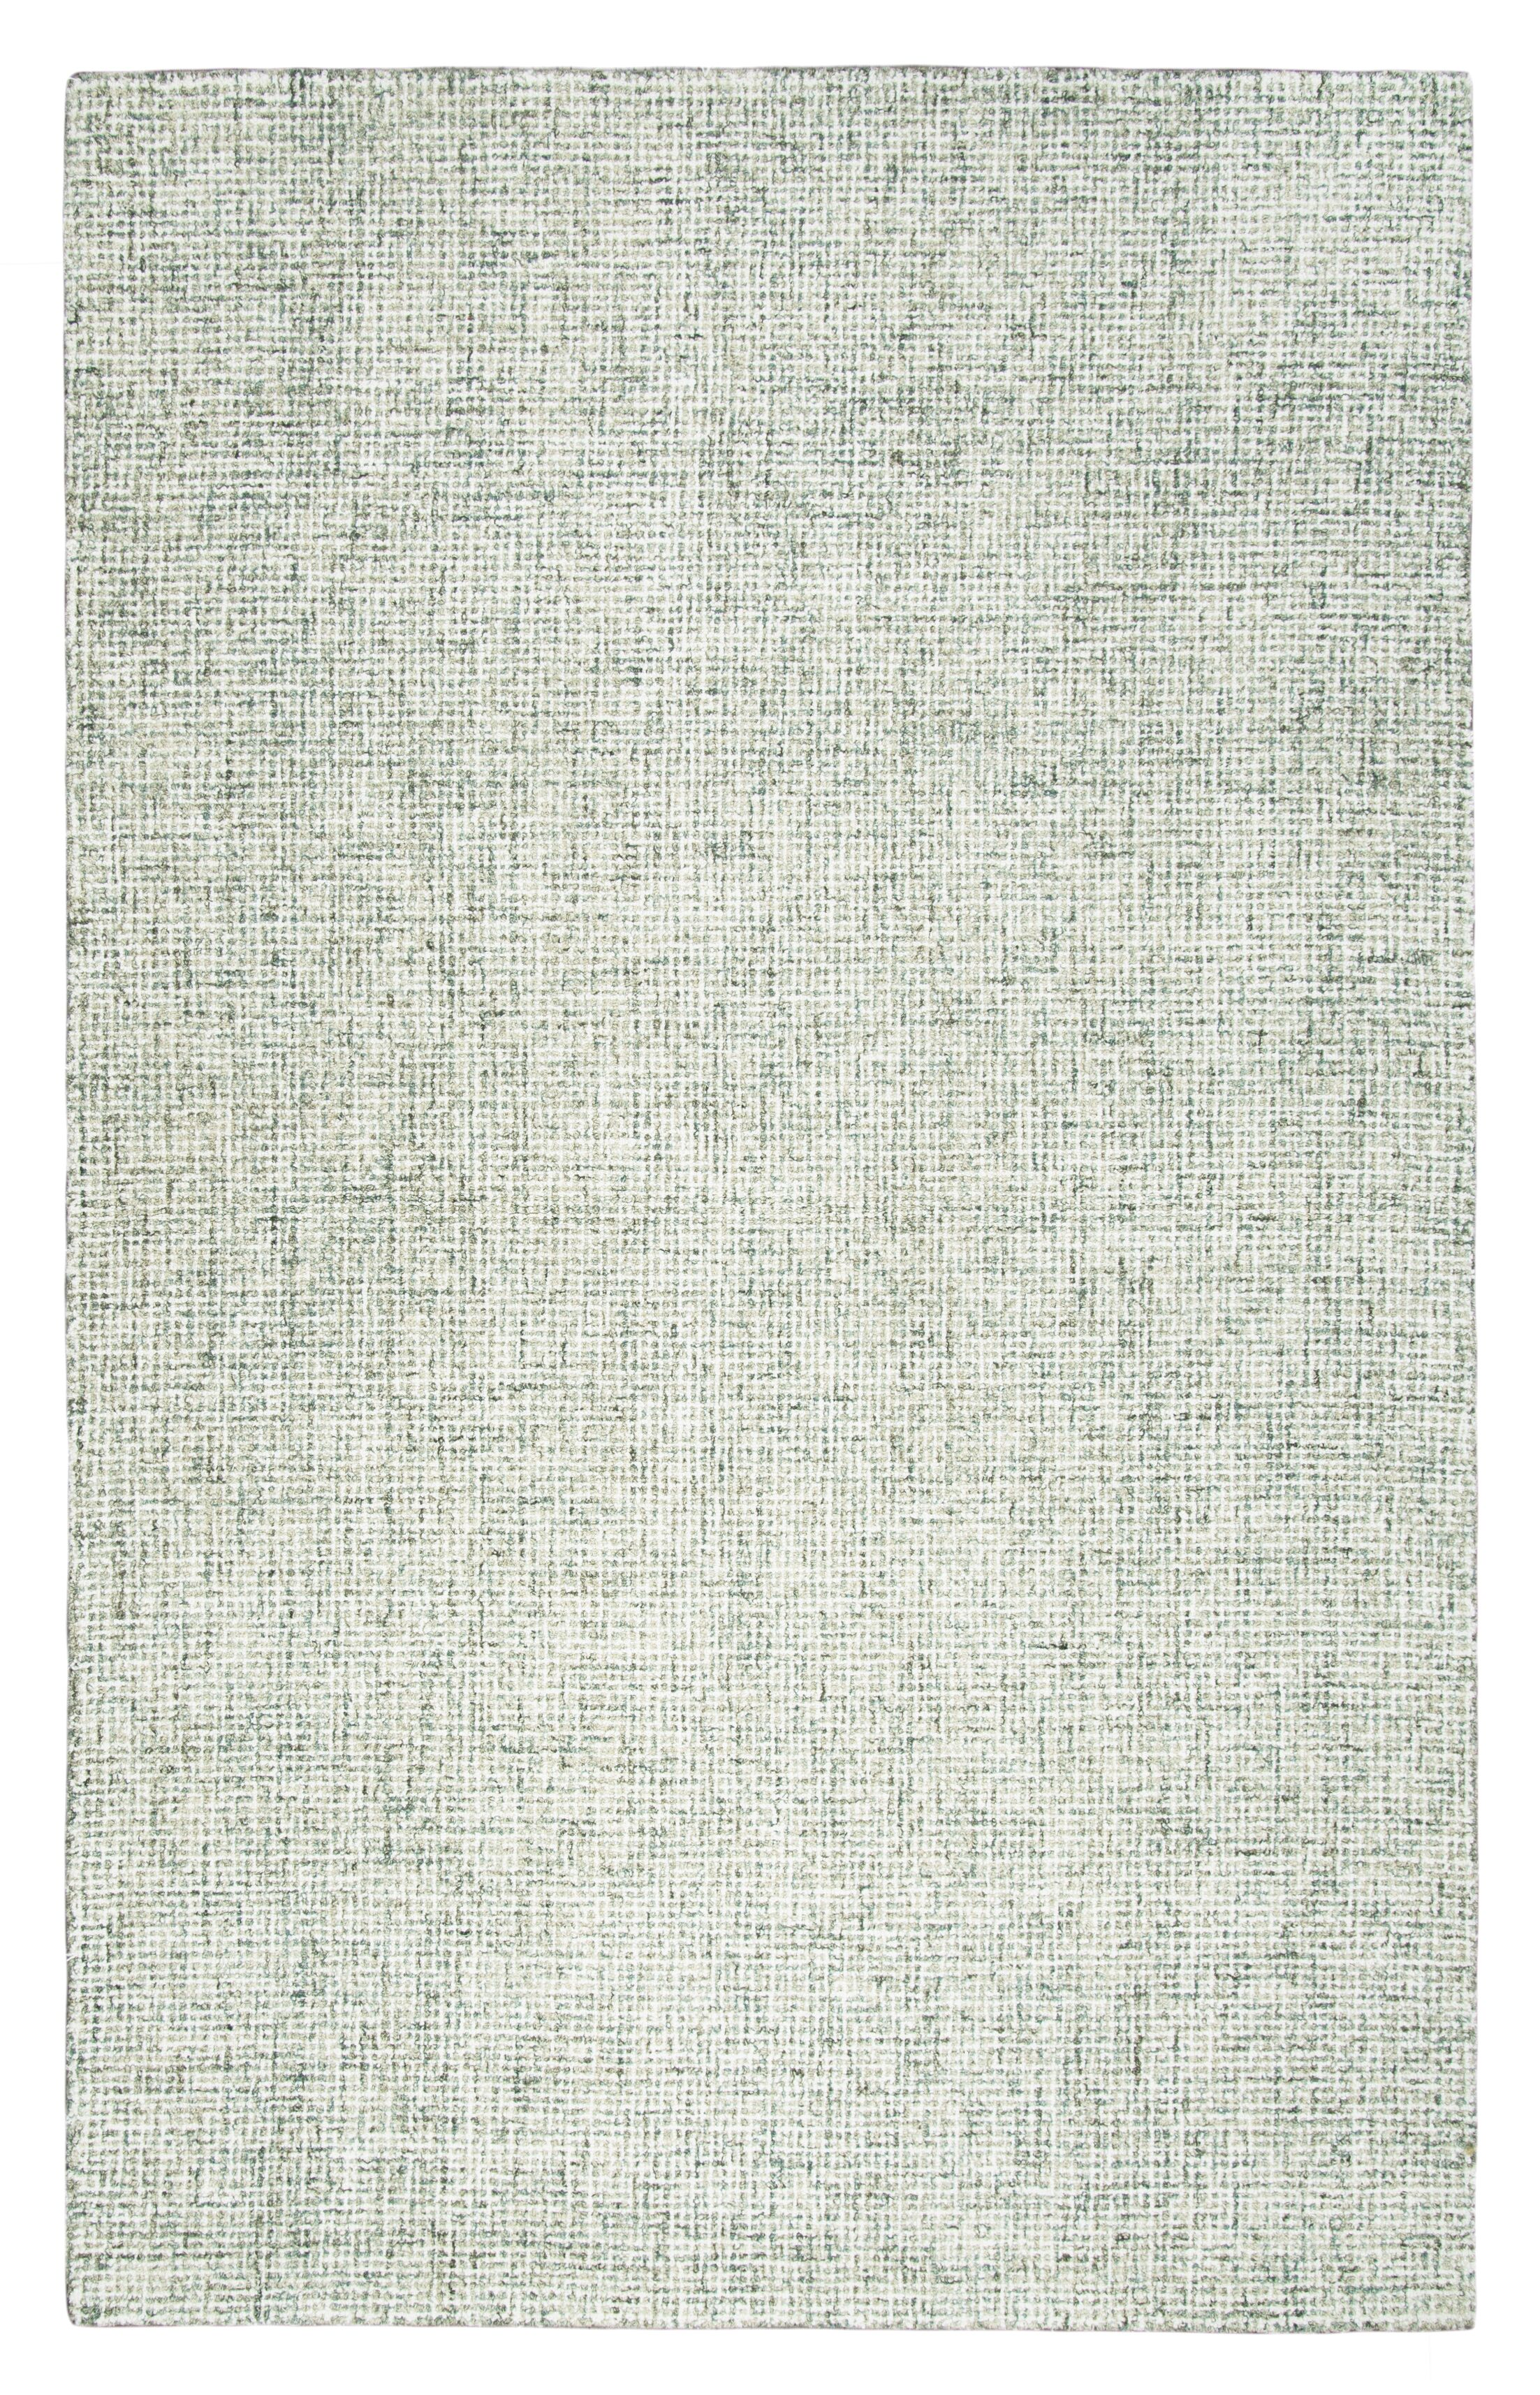 Marsh Hand-Tufted Wool Green Area Rug Rug Size: Rectangle 3' x 5'